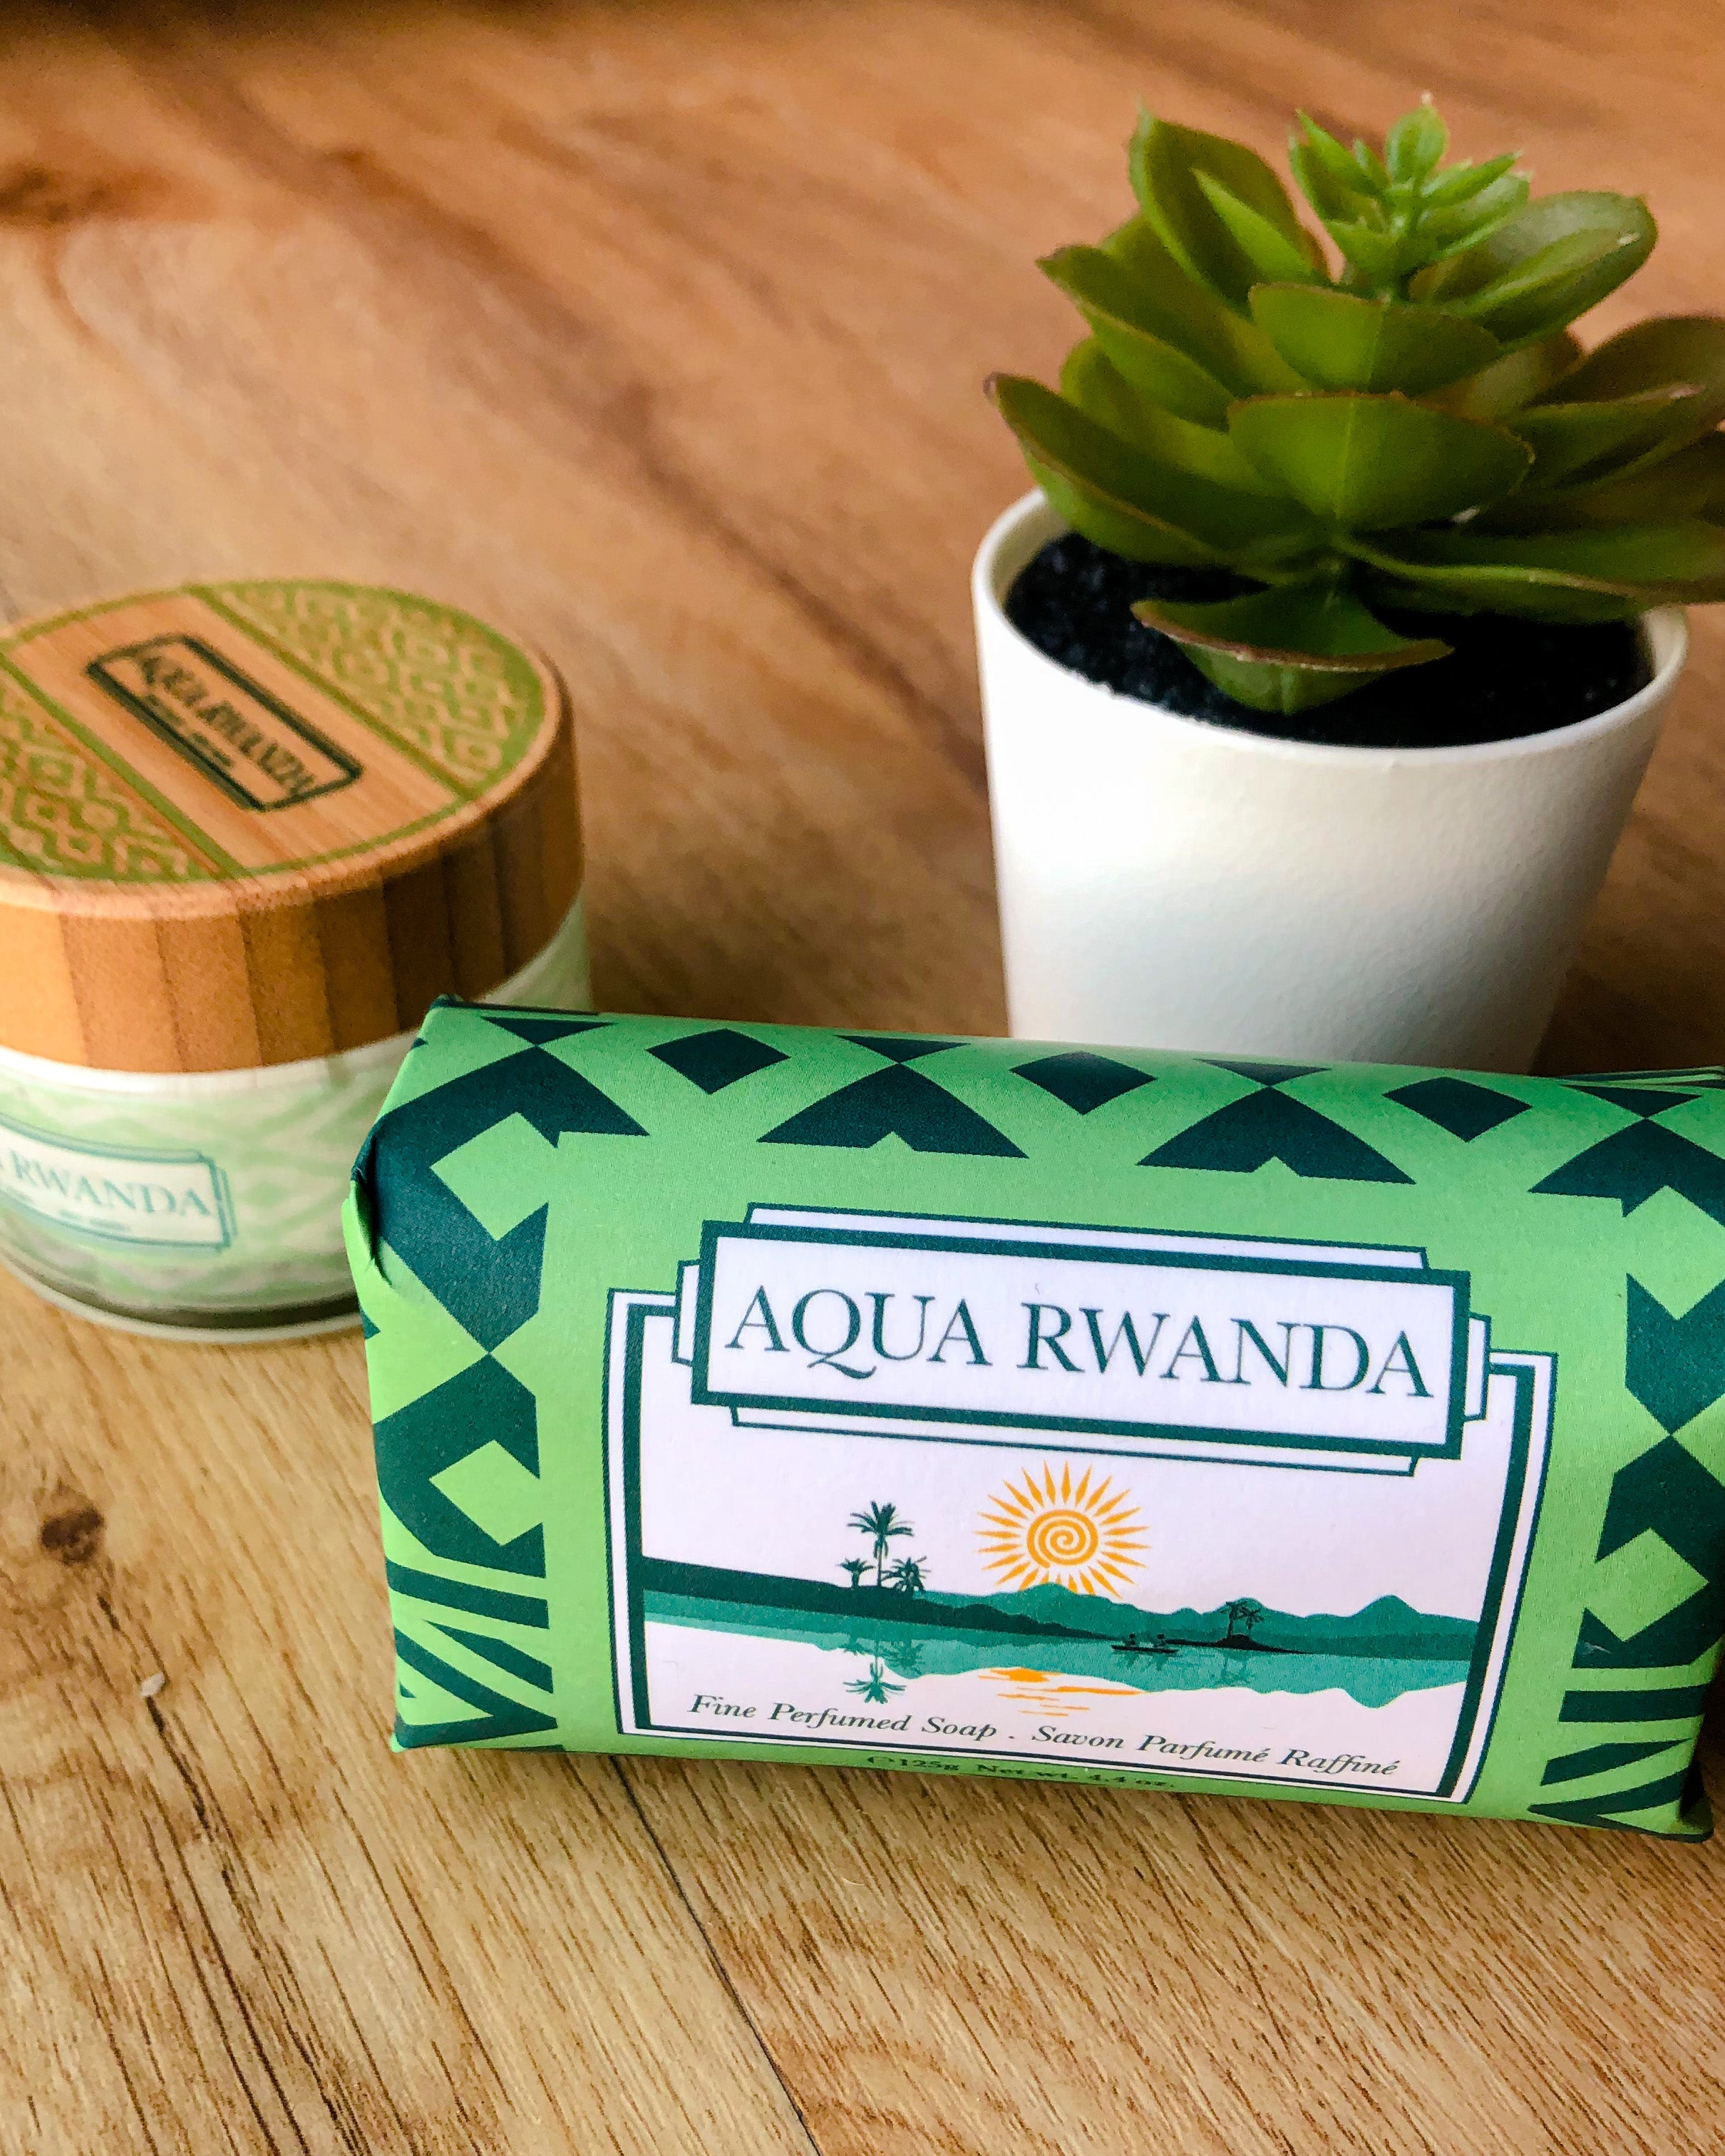 AQUA RWANDA Fine Perfumed Soap Bar (Pack of 3)